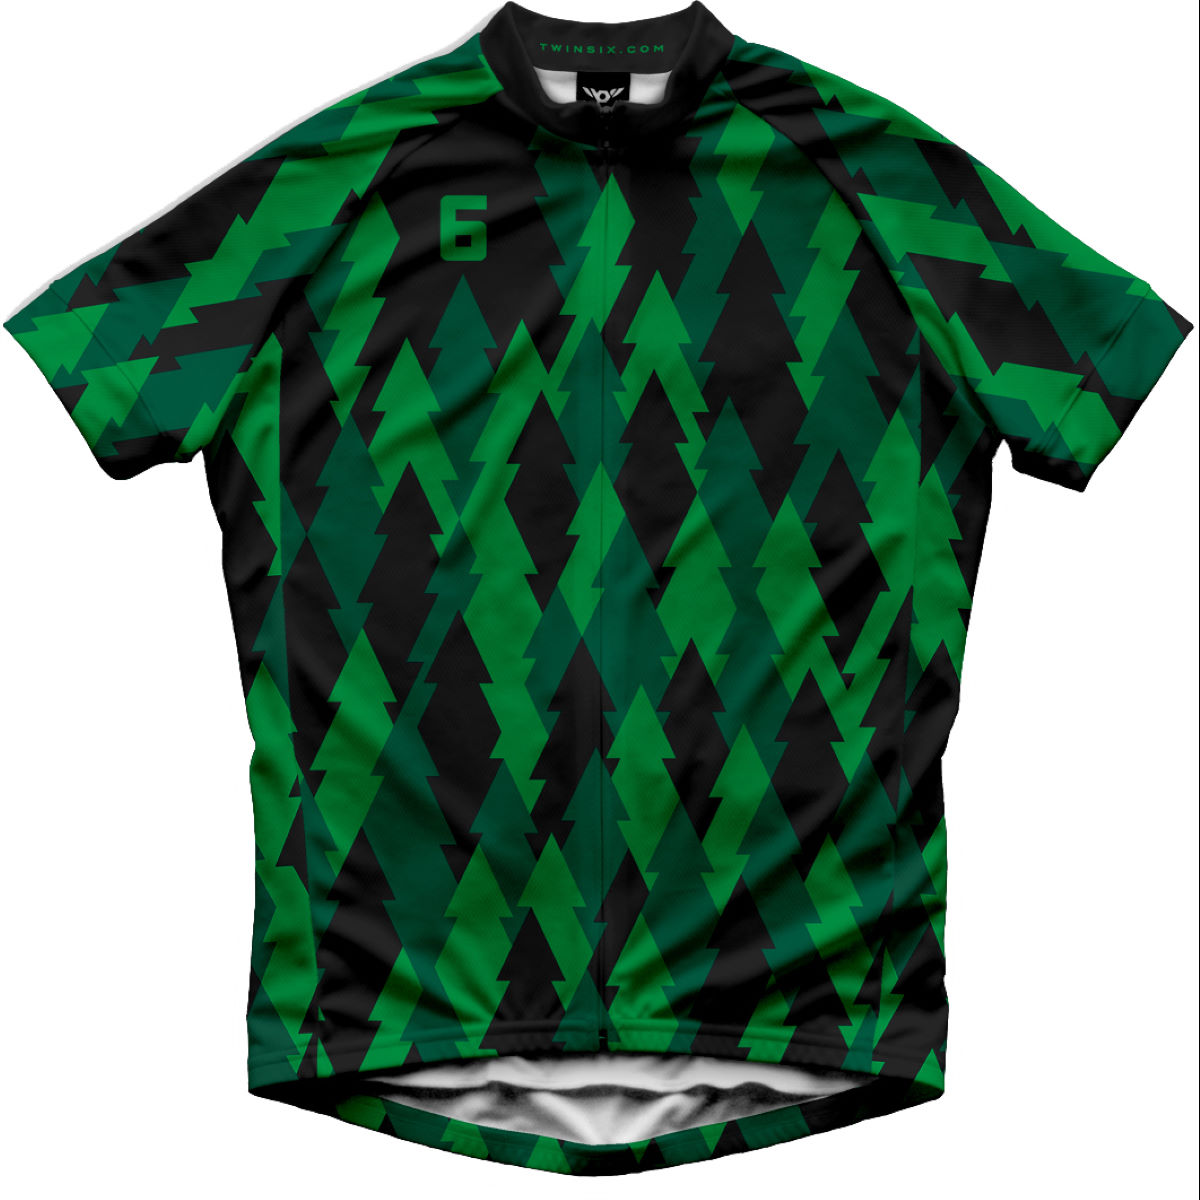 Twin Six The Deep Woods SS Jersey - Maillots